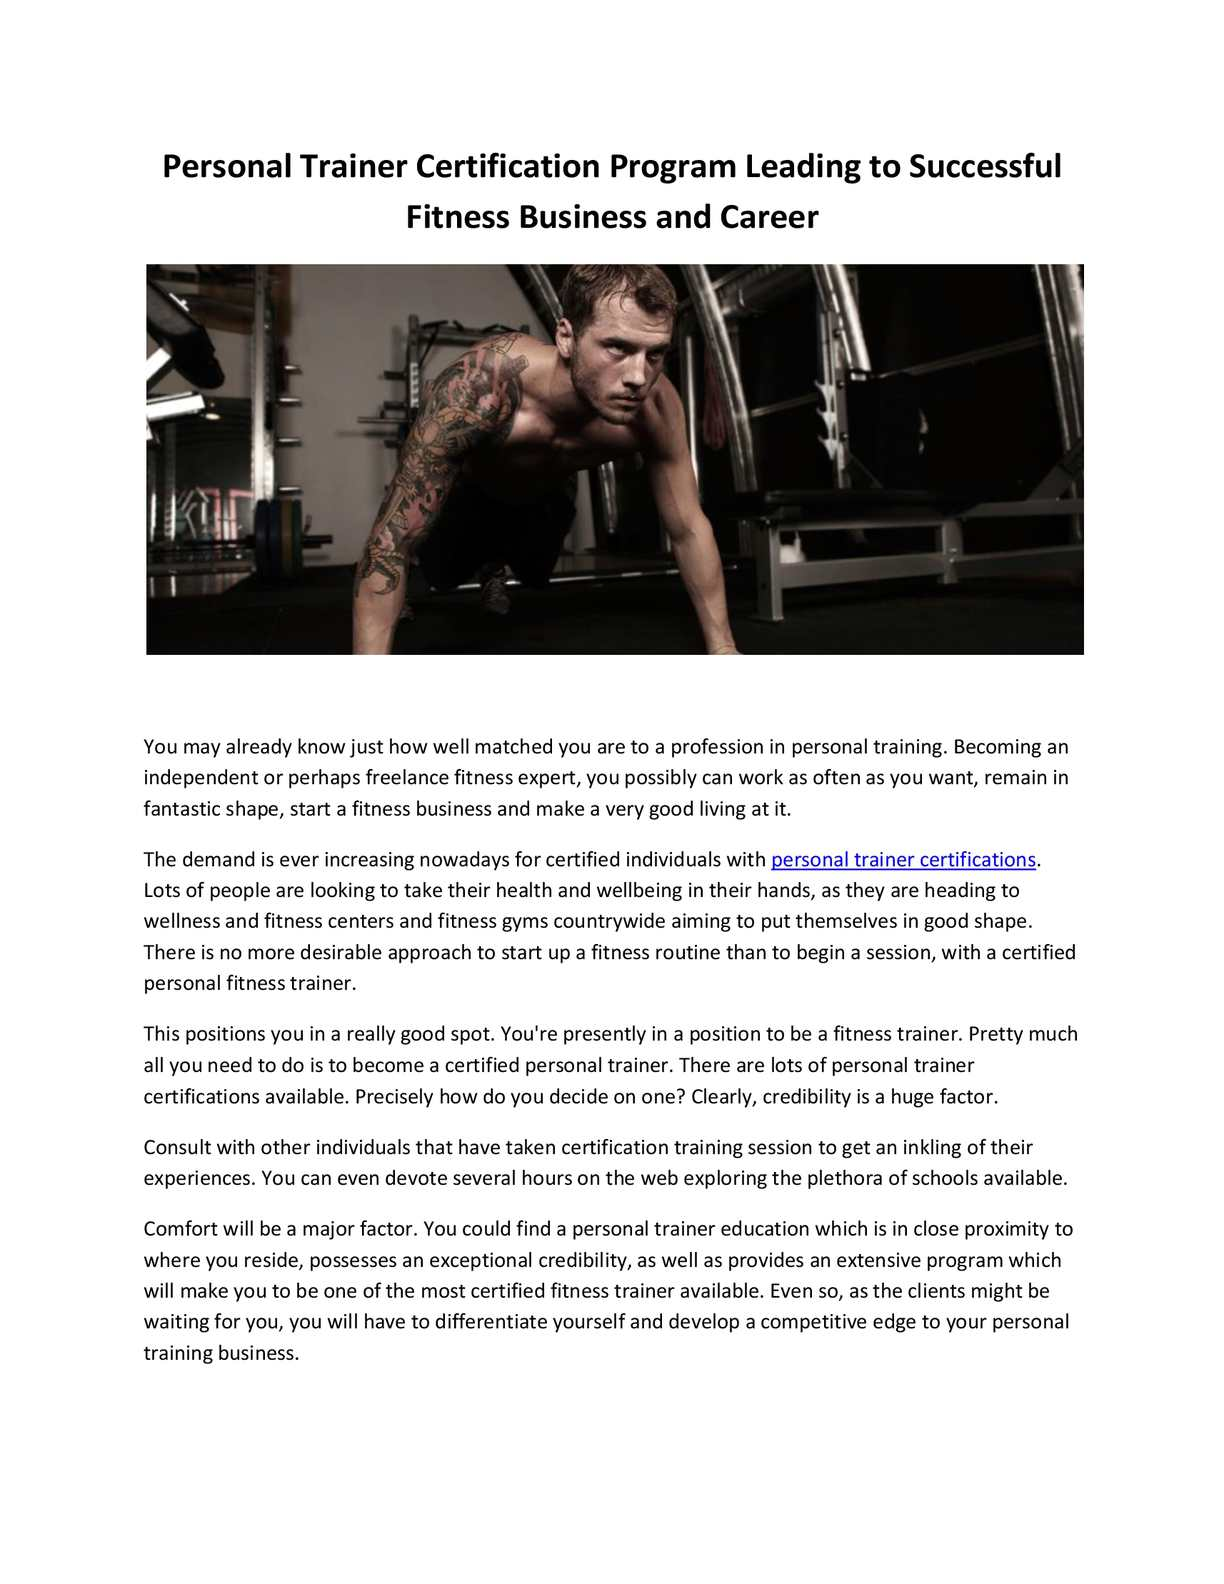 Calamo Personal Trainer Certification